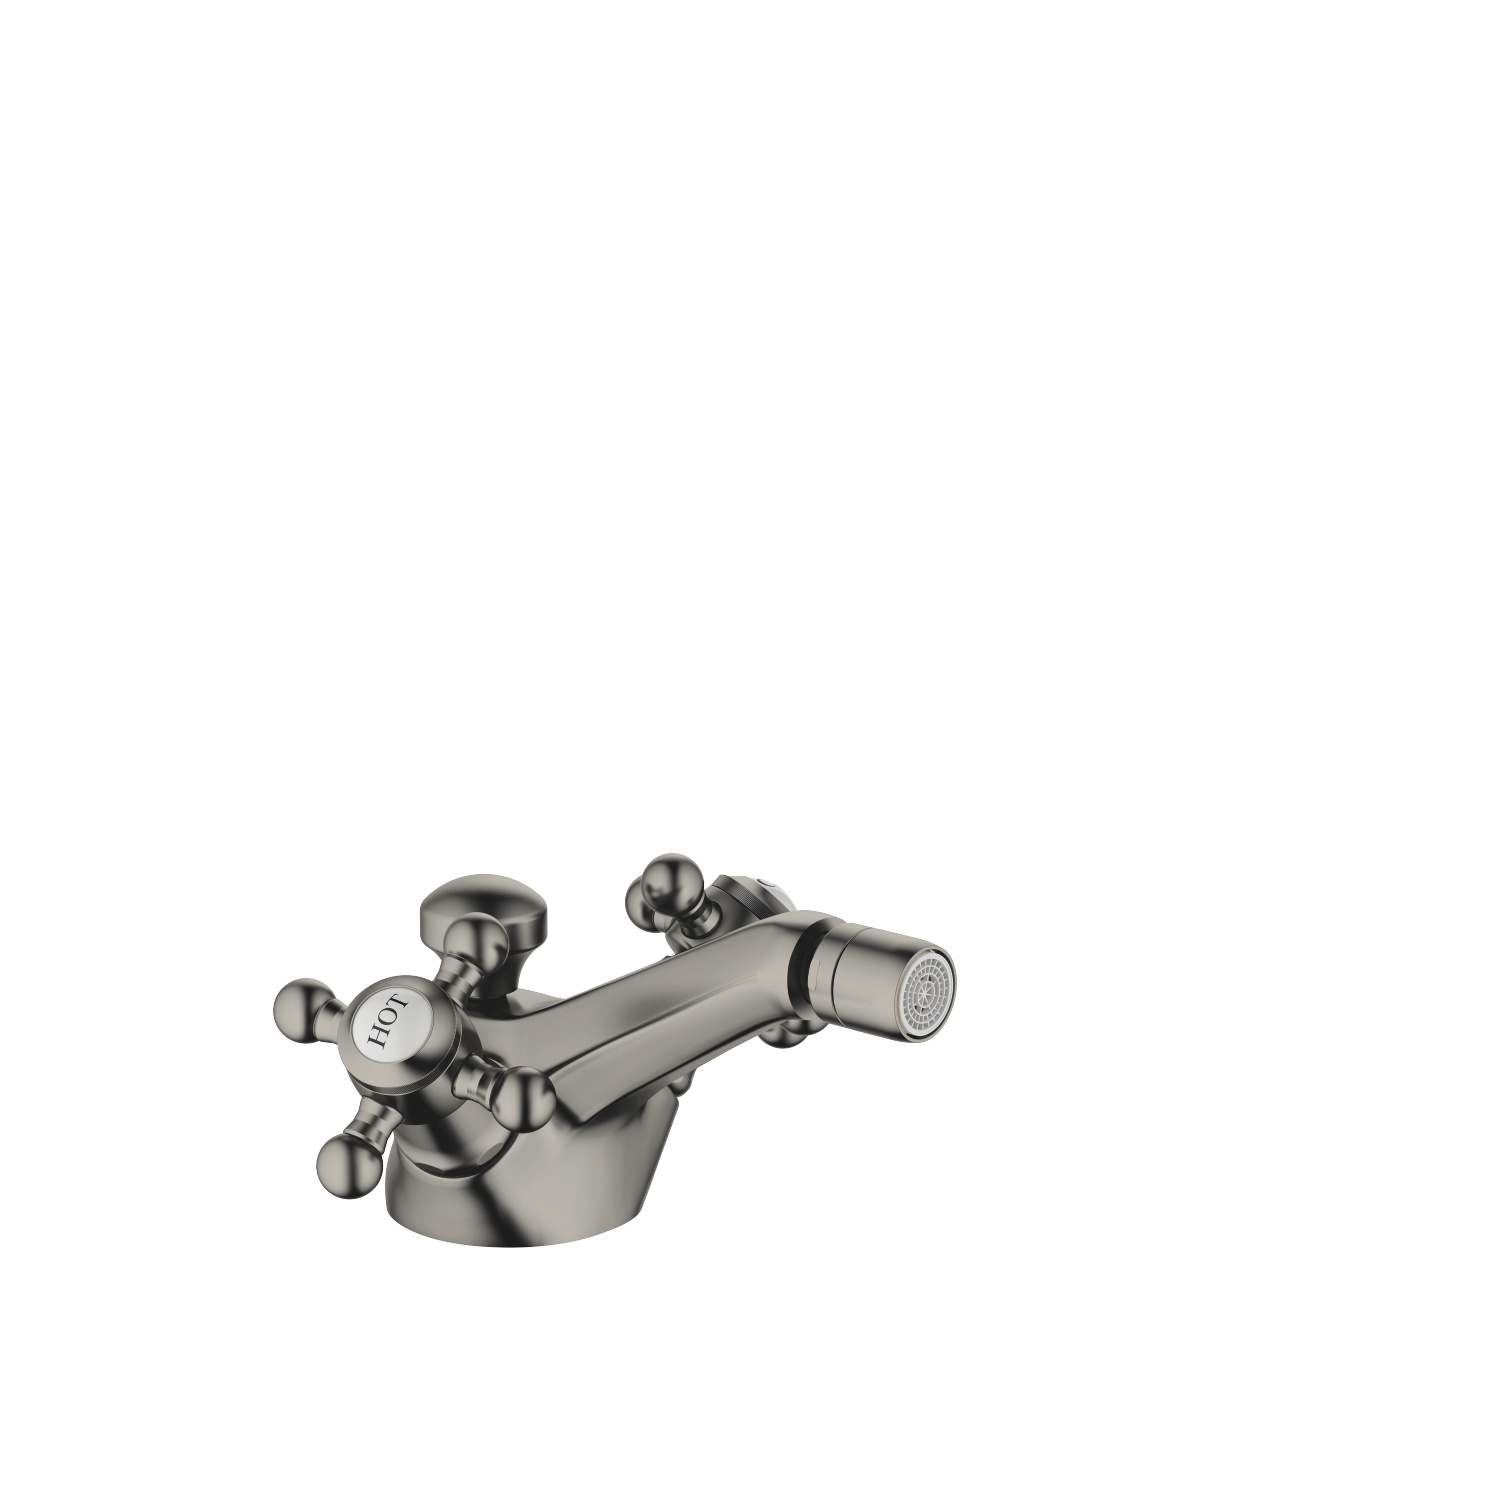 Single-hole bidet mixer with pop-up waste - Dark Platinum matt